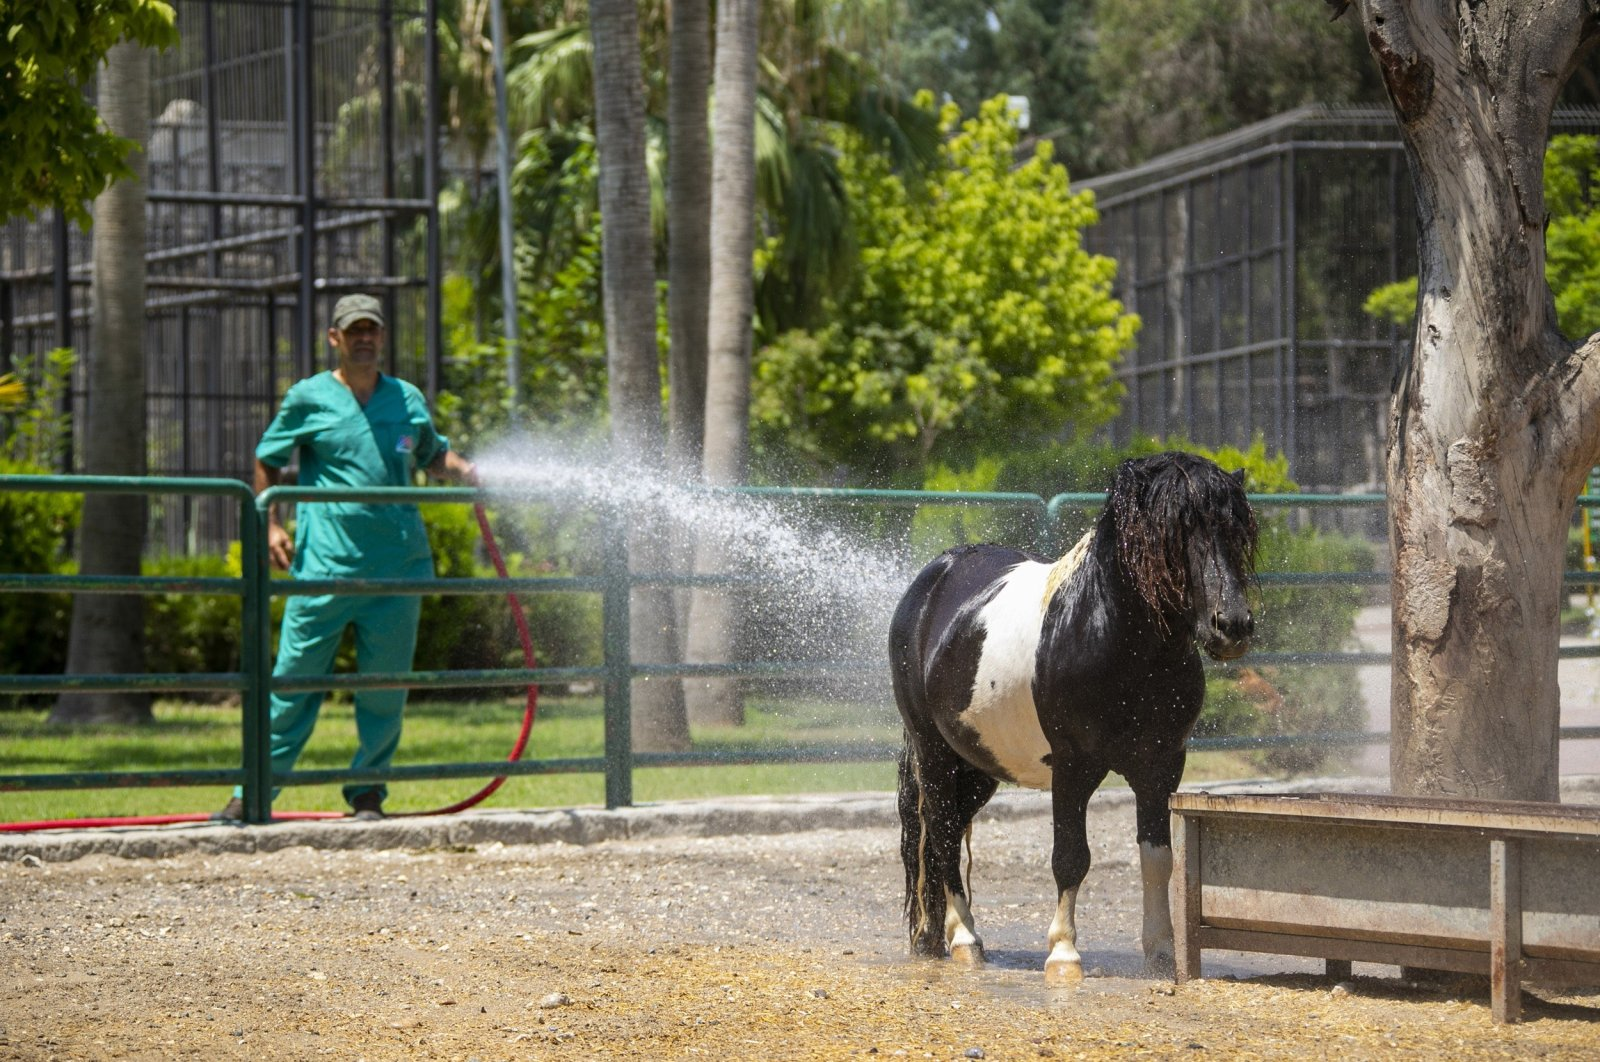 An attendant sprays water to cool a pony at Tarsus Nature Park, in Mersin,Turkey, July 18, 2021. (İHA PHOTO)